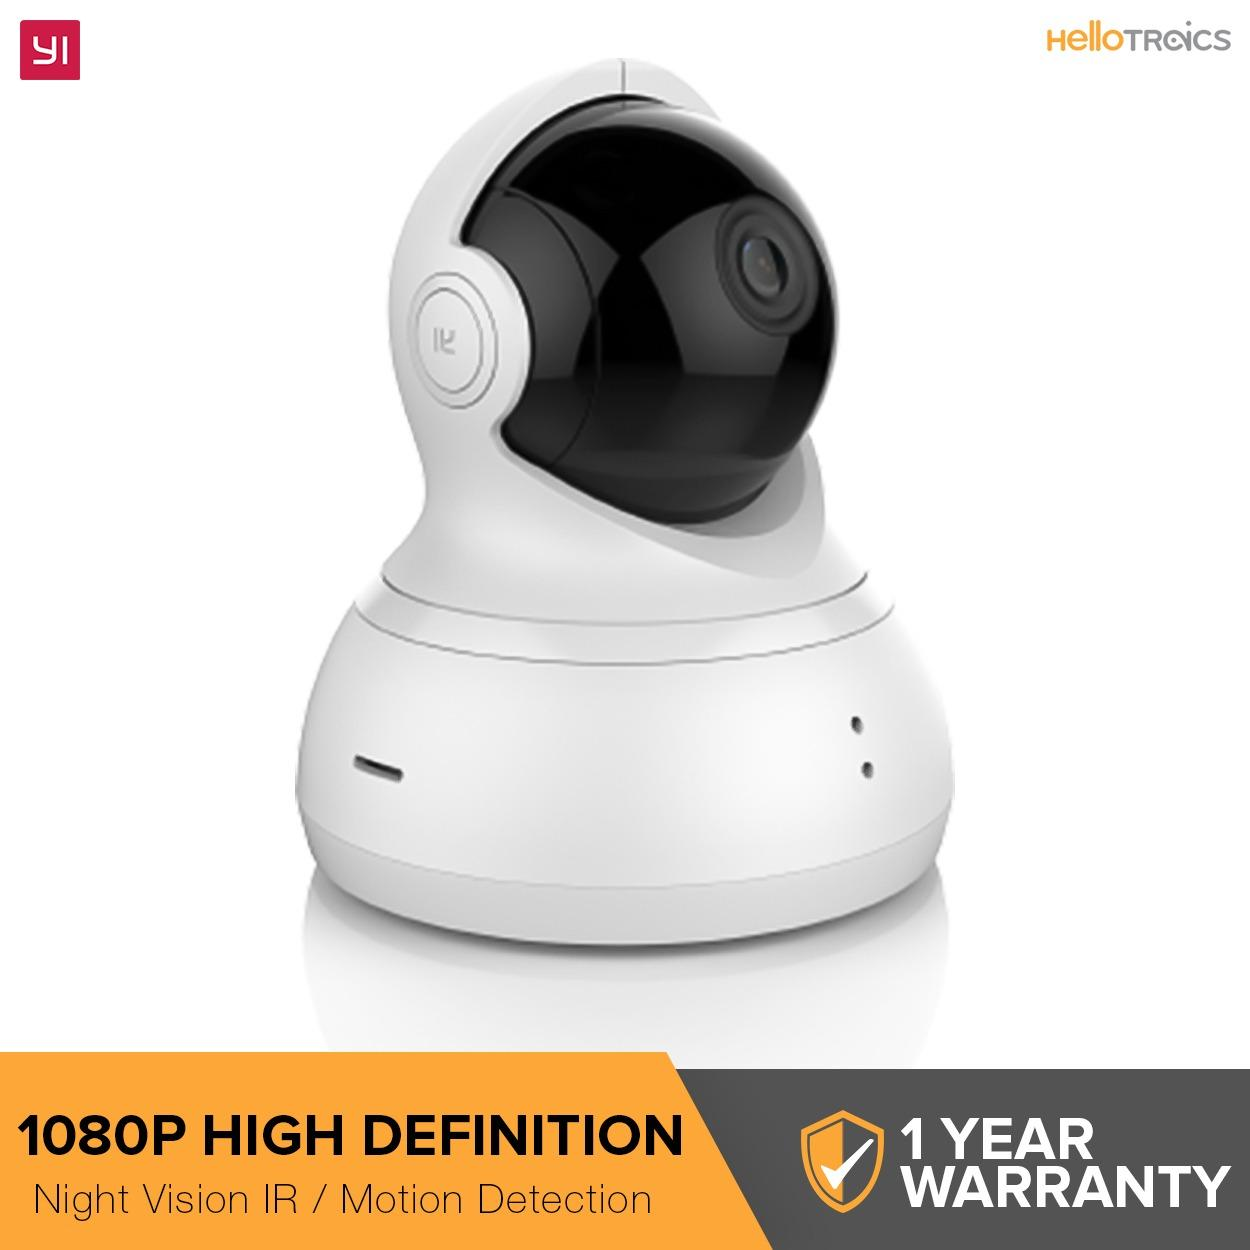 The Price Of Xiaomi Mi Home 360 Security Ip Cctv Camera Philippines Xiaofang Smart Wifi 1080p With Night Vision Yi Degrees Dome System White